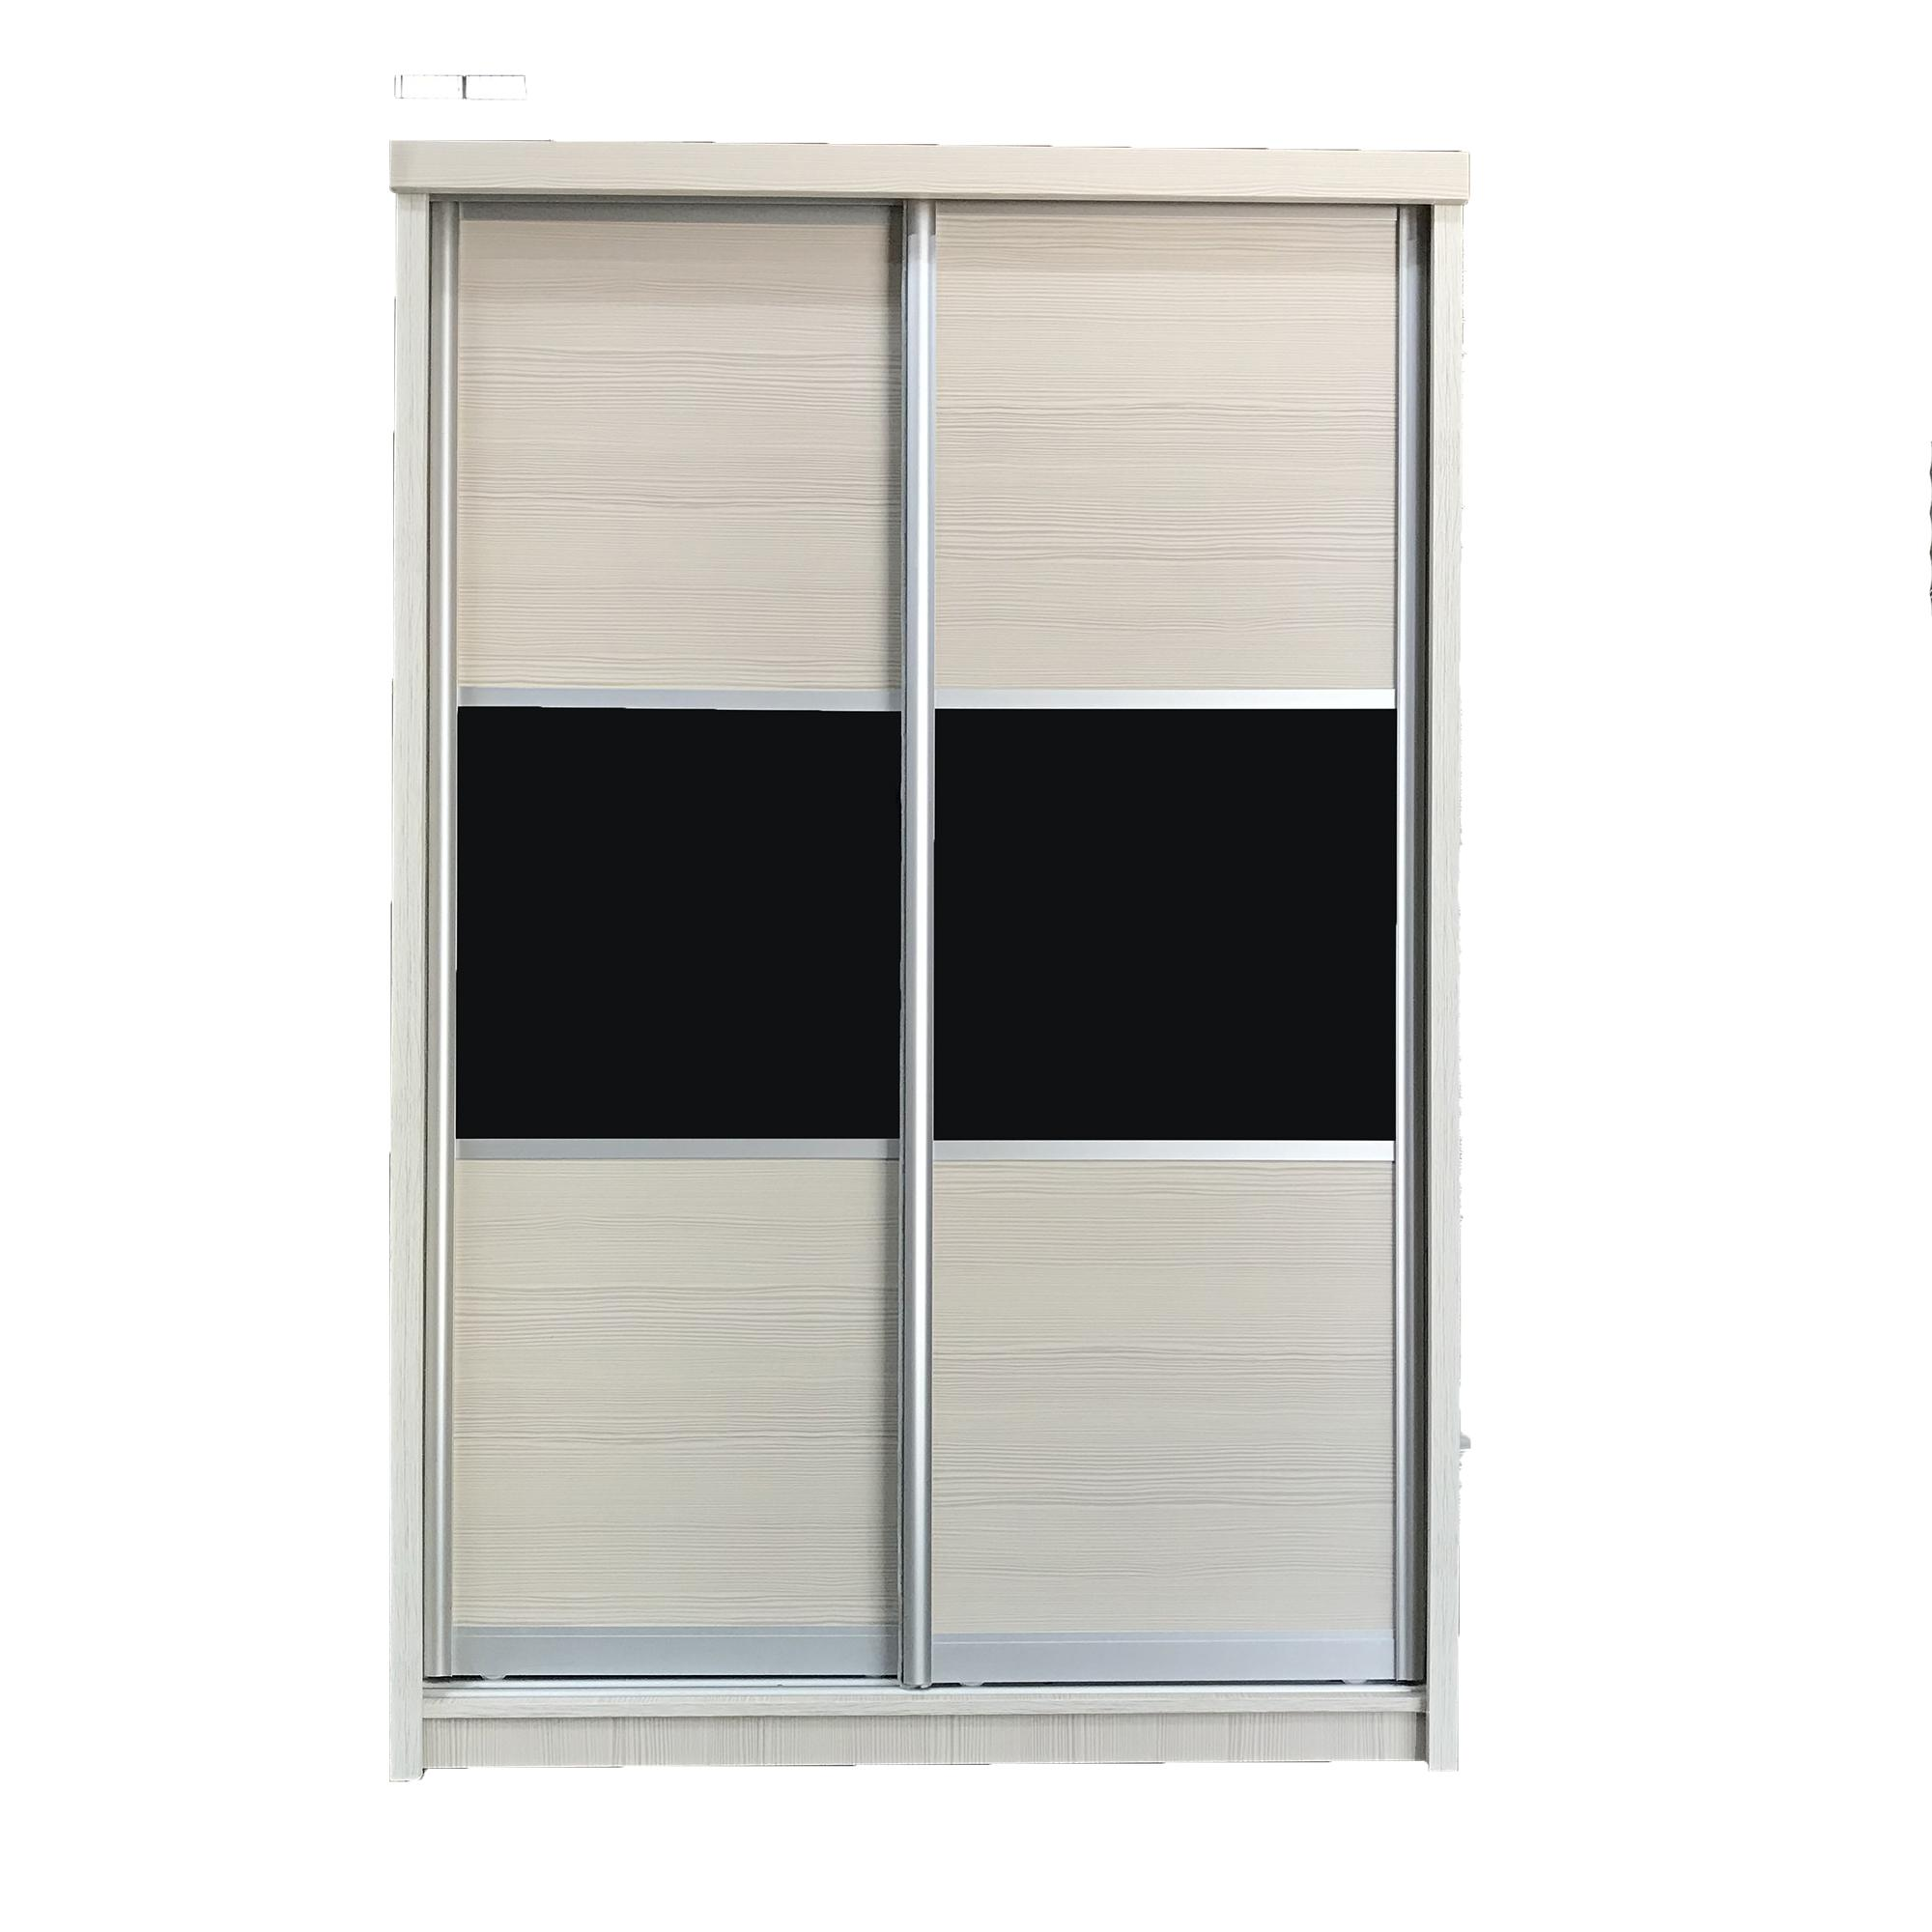 4FT Sliding Plywood Wardrobe with Built-in Mirror